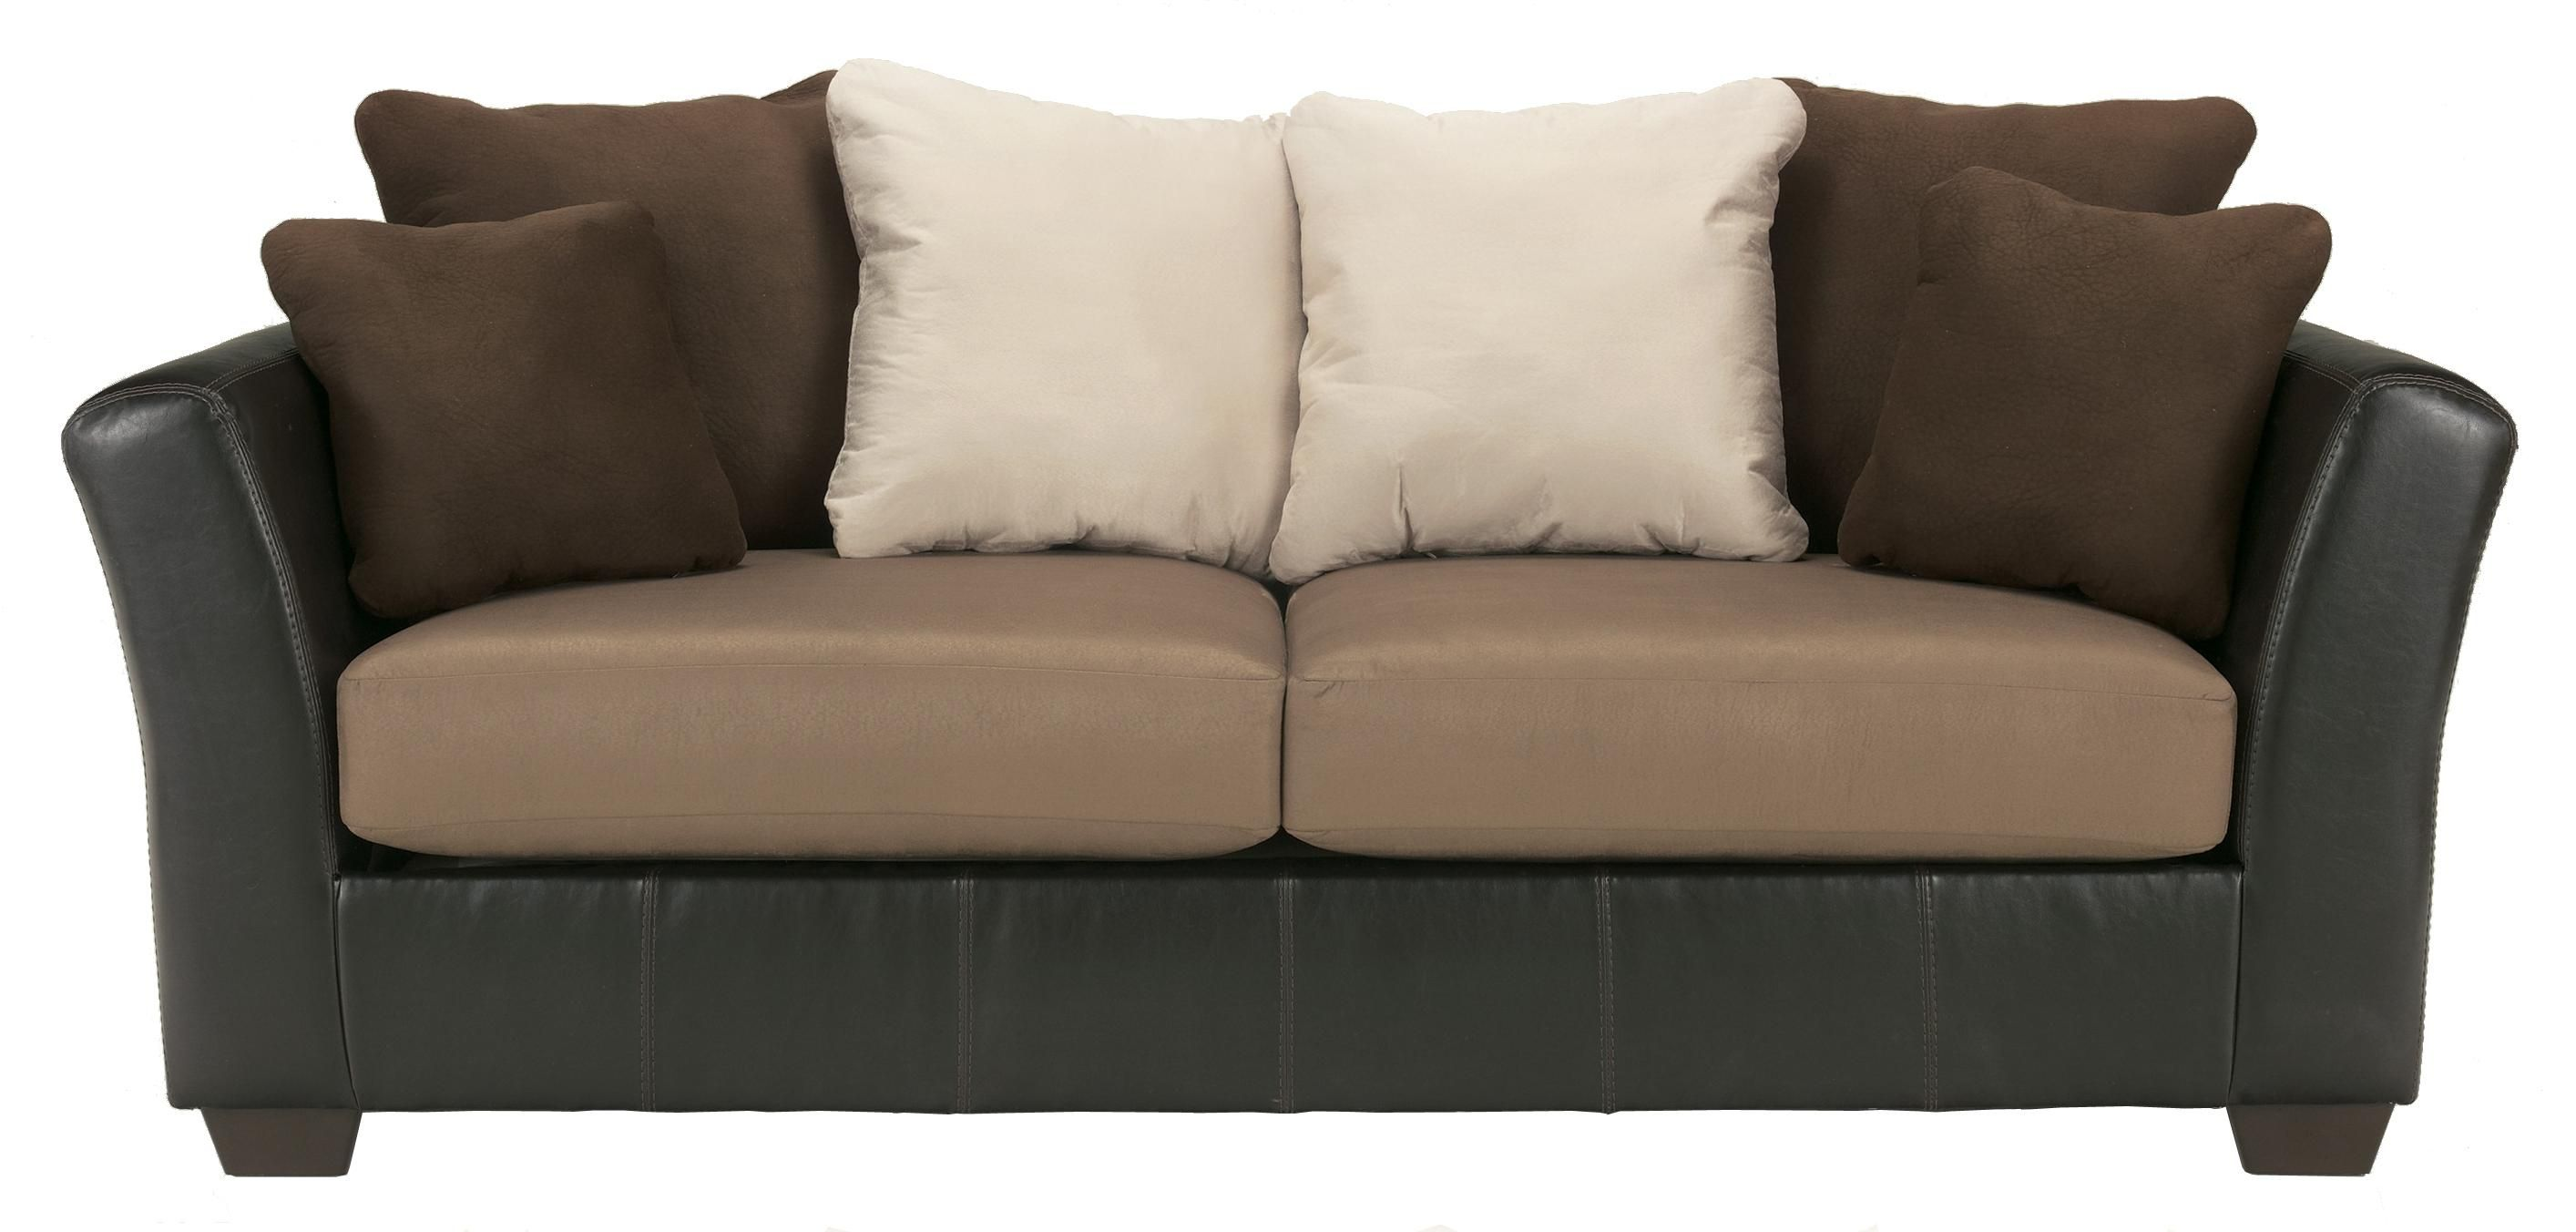 Best Masoli Mocha Faux Leather Fabric Sofa With Loose Back Pillows By Benchcraft Michael S 400 x 300